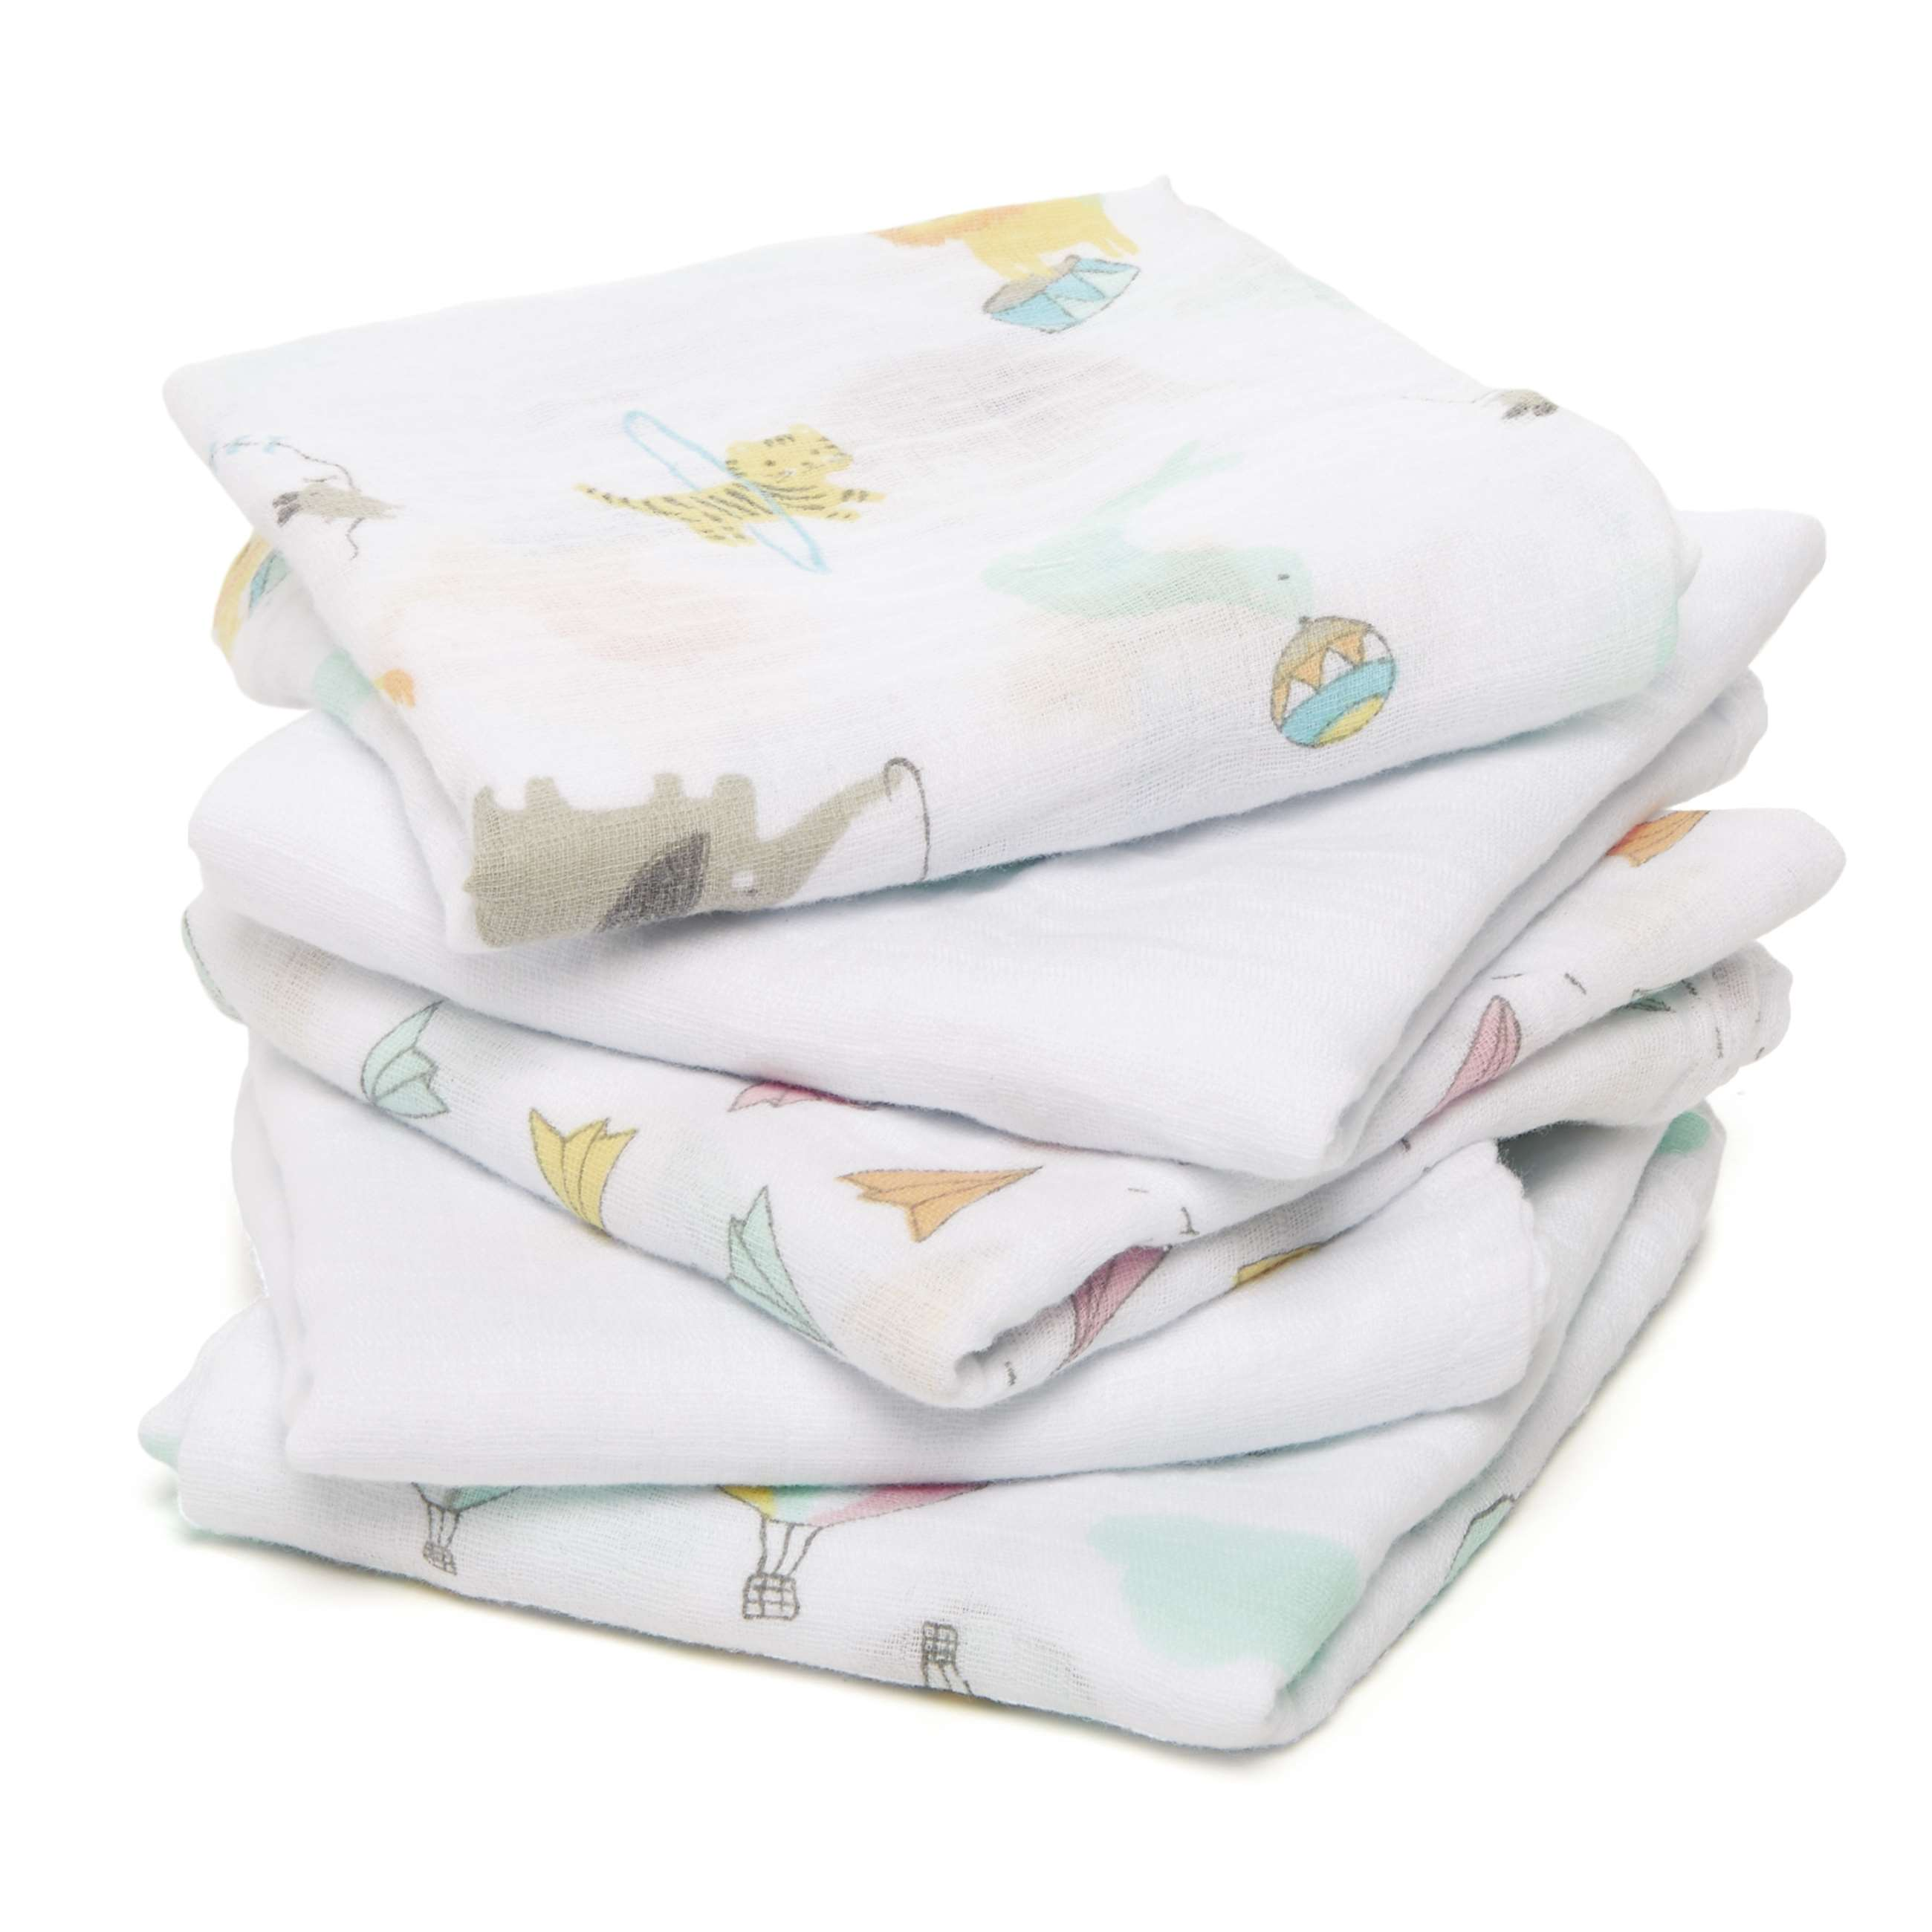 s3396_1-aden-muslin-musy-squares-carnival